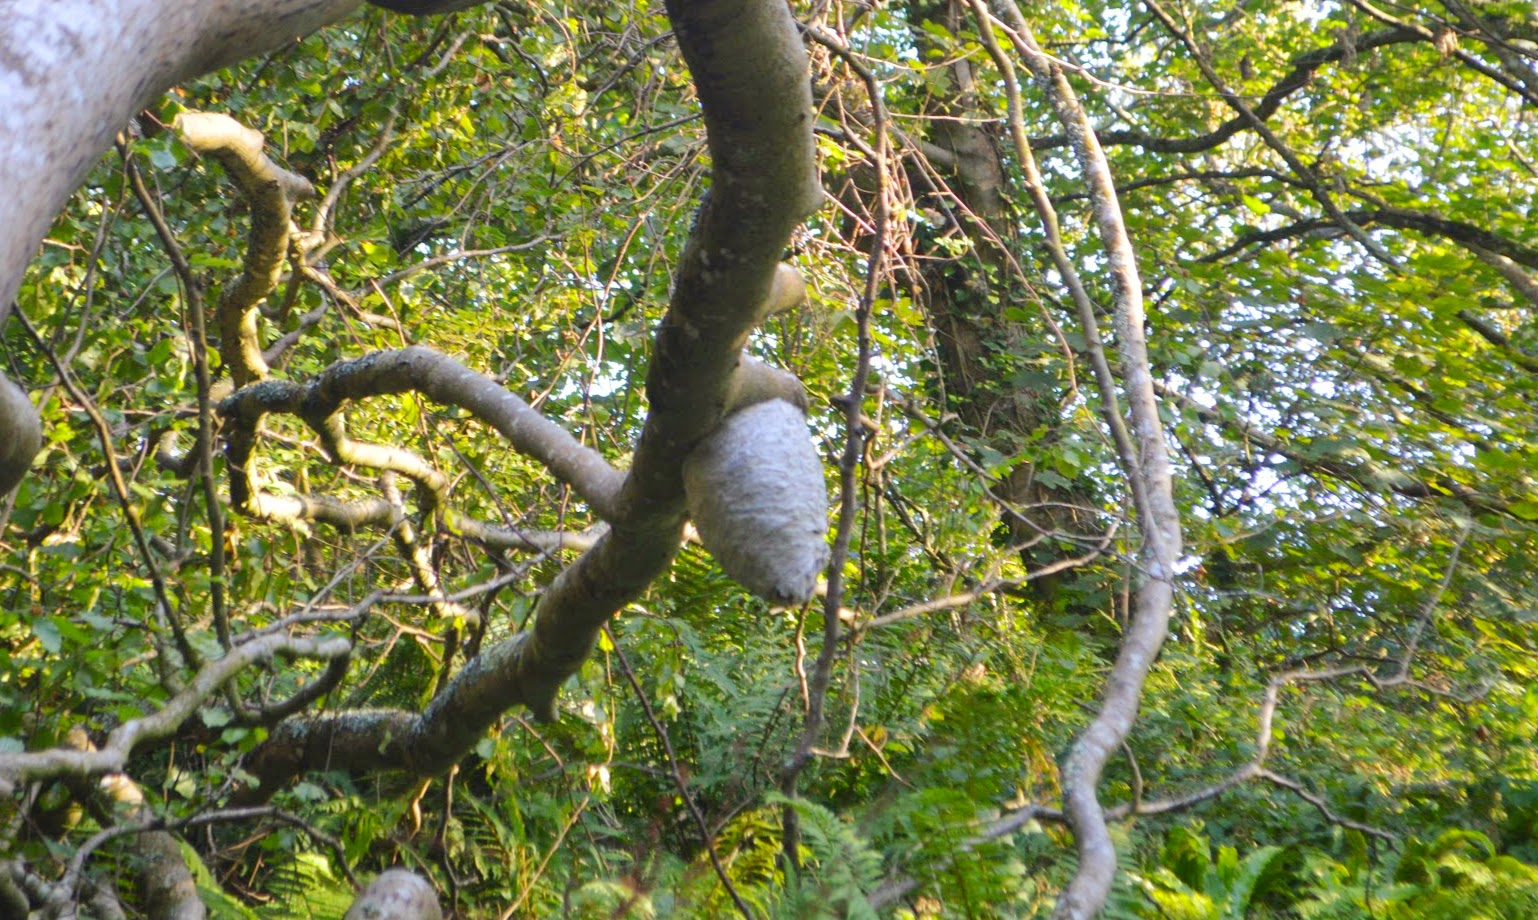 Wasp's Nest Monk Haven Pembrokeshire Wales Church Beach Rope Swing Family Fun day out